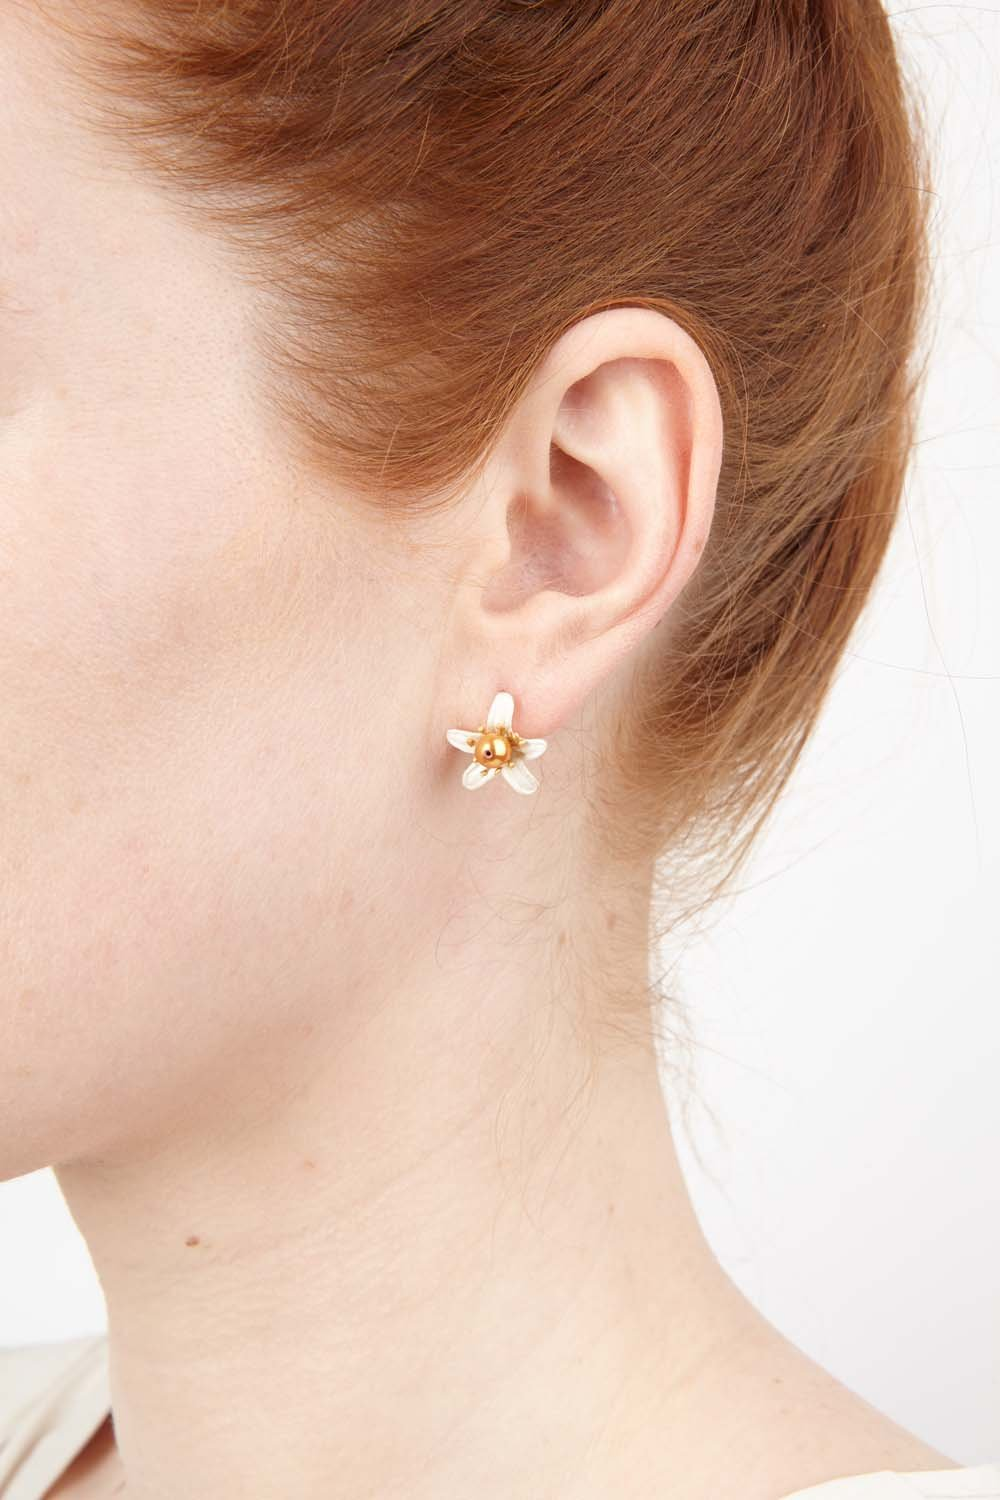 Orange Blossom Earrings - Petite Flower Stud